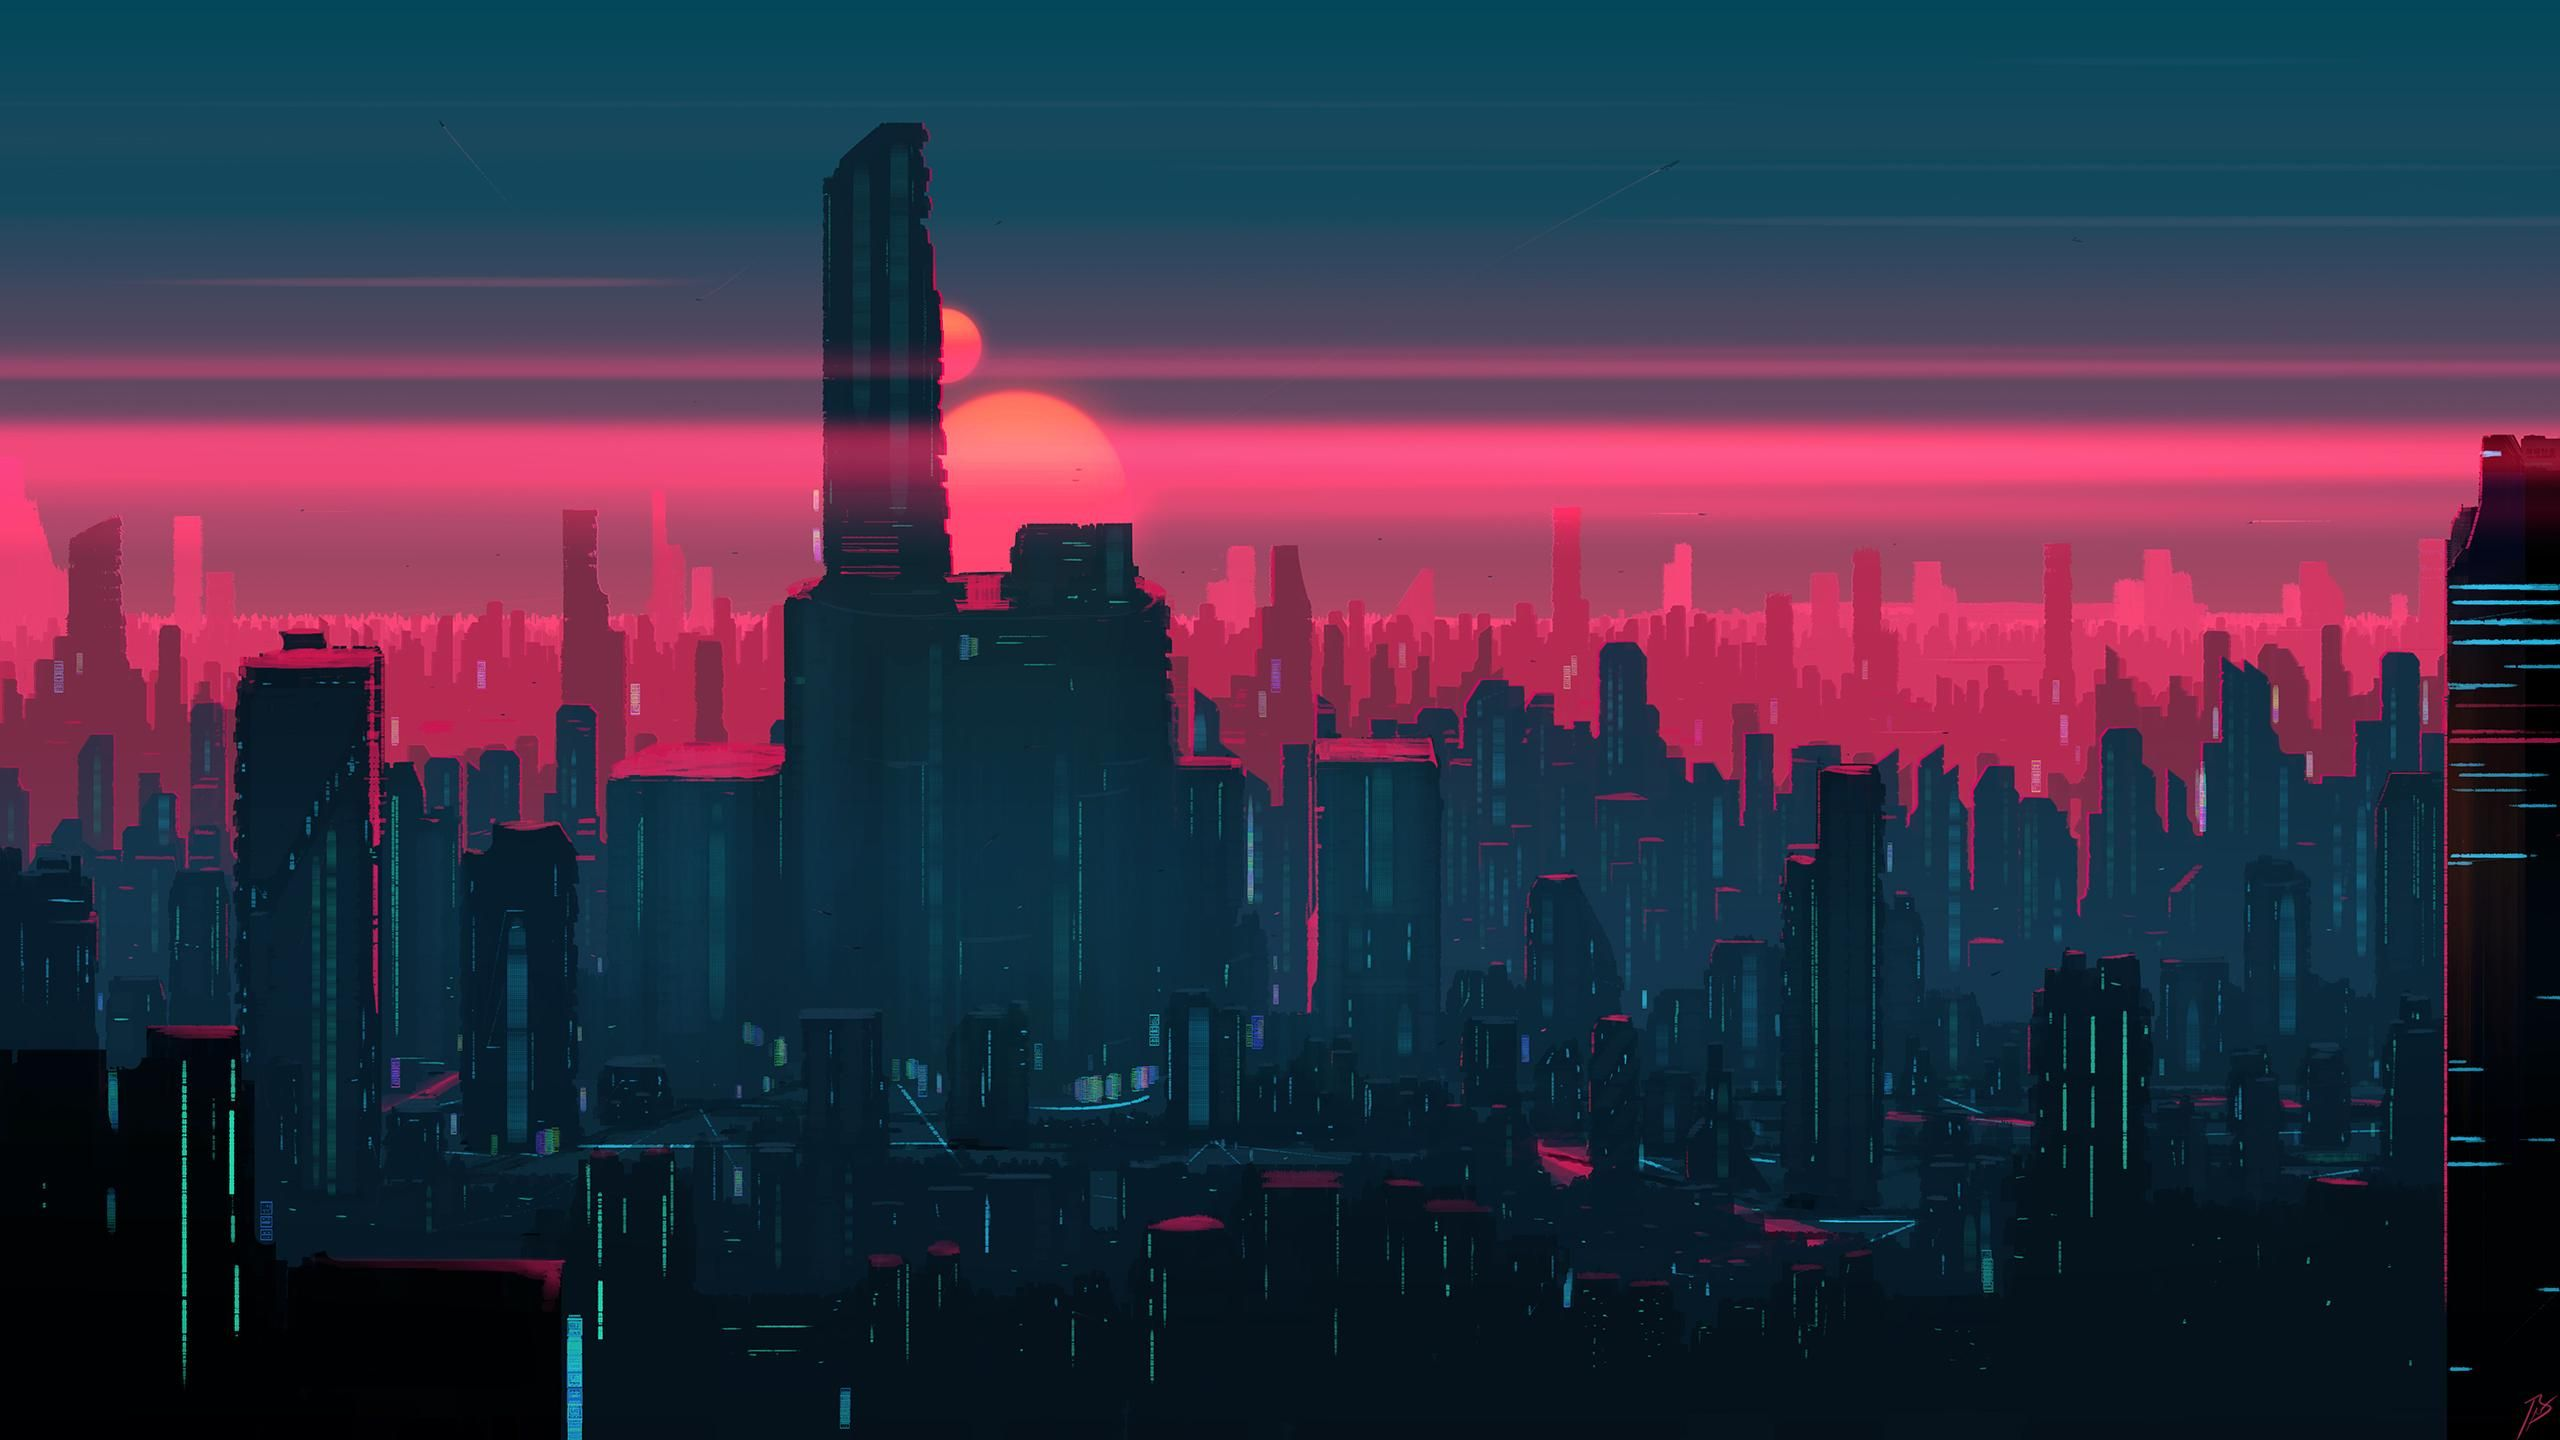 Futuristic City wallpaper City wallpaper, Futuristic